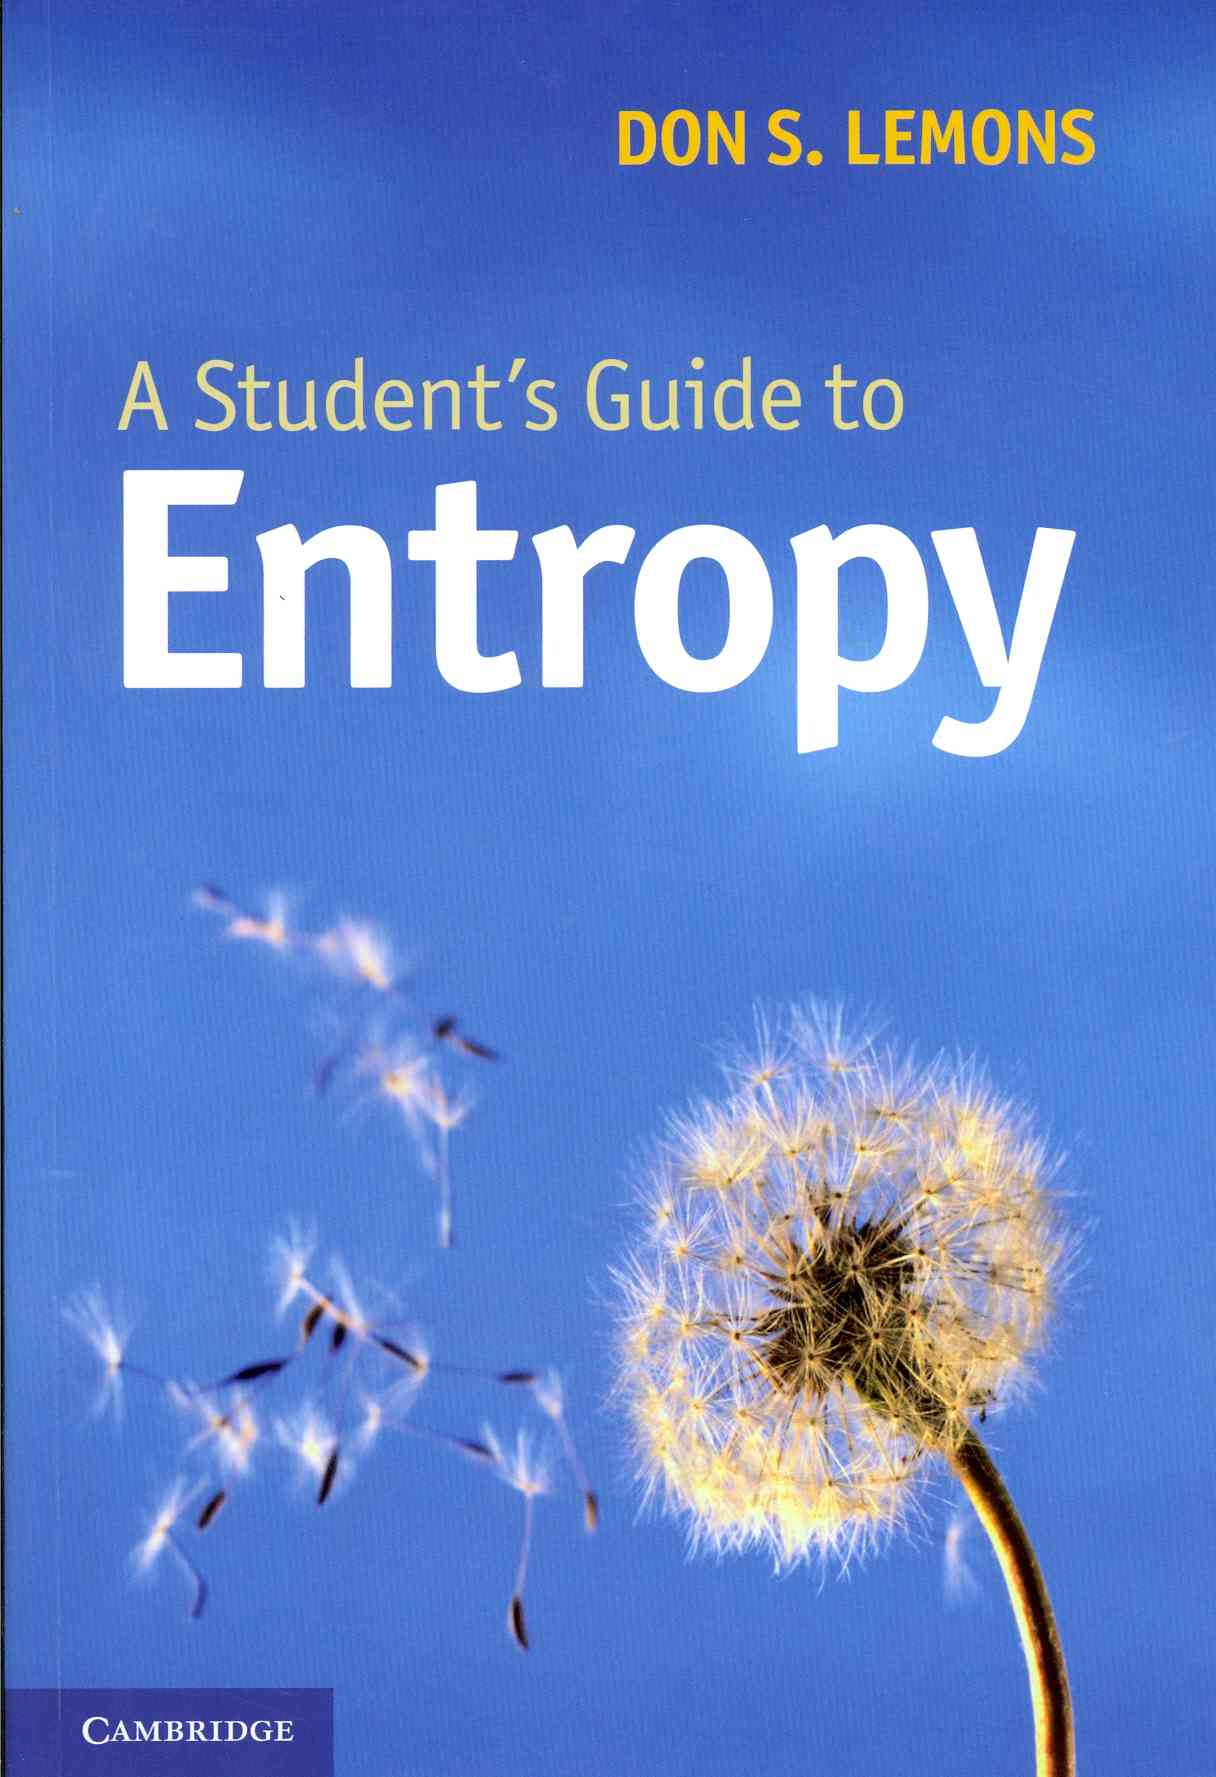 A Student's Guide to Entropy By Lemons, Don S.